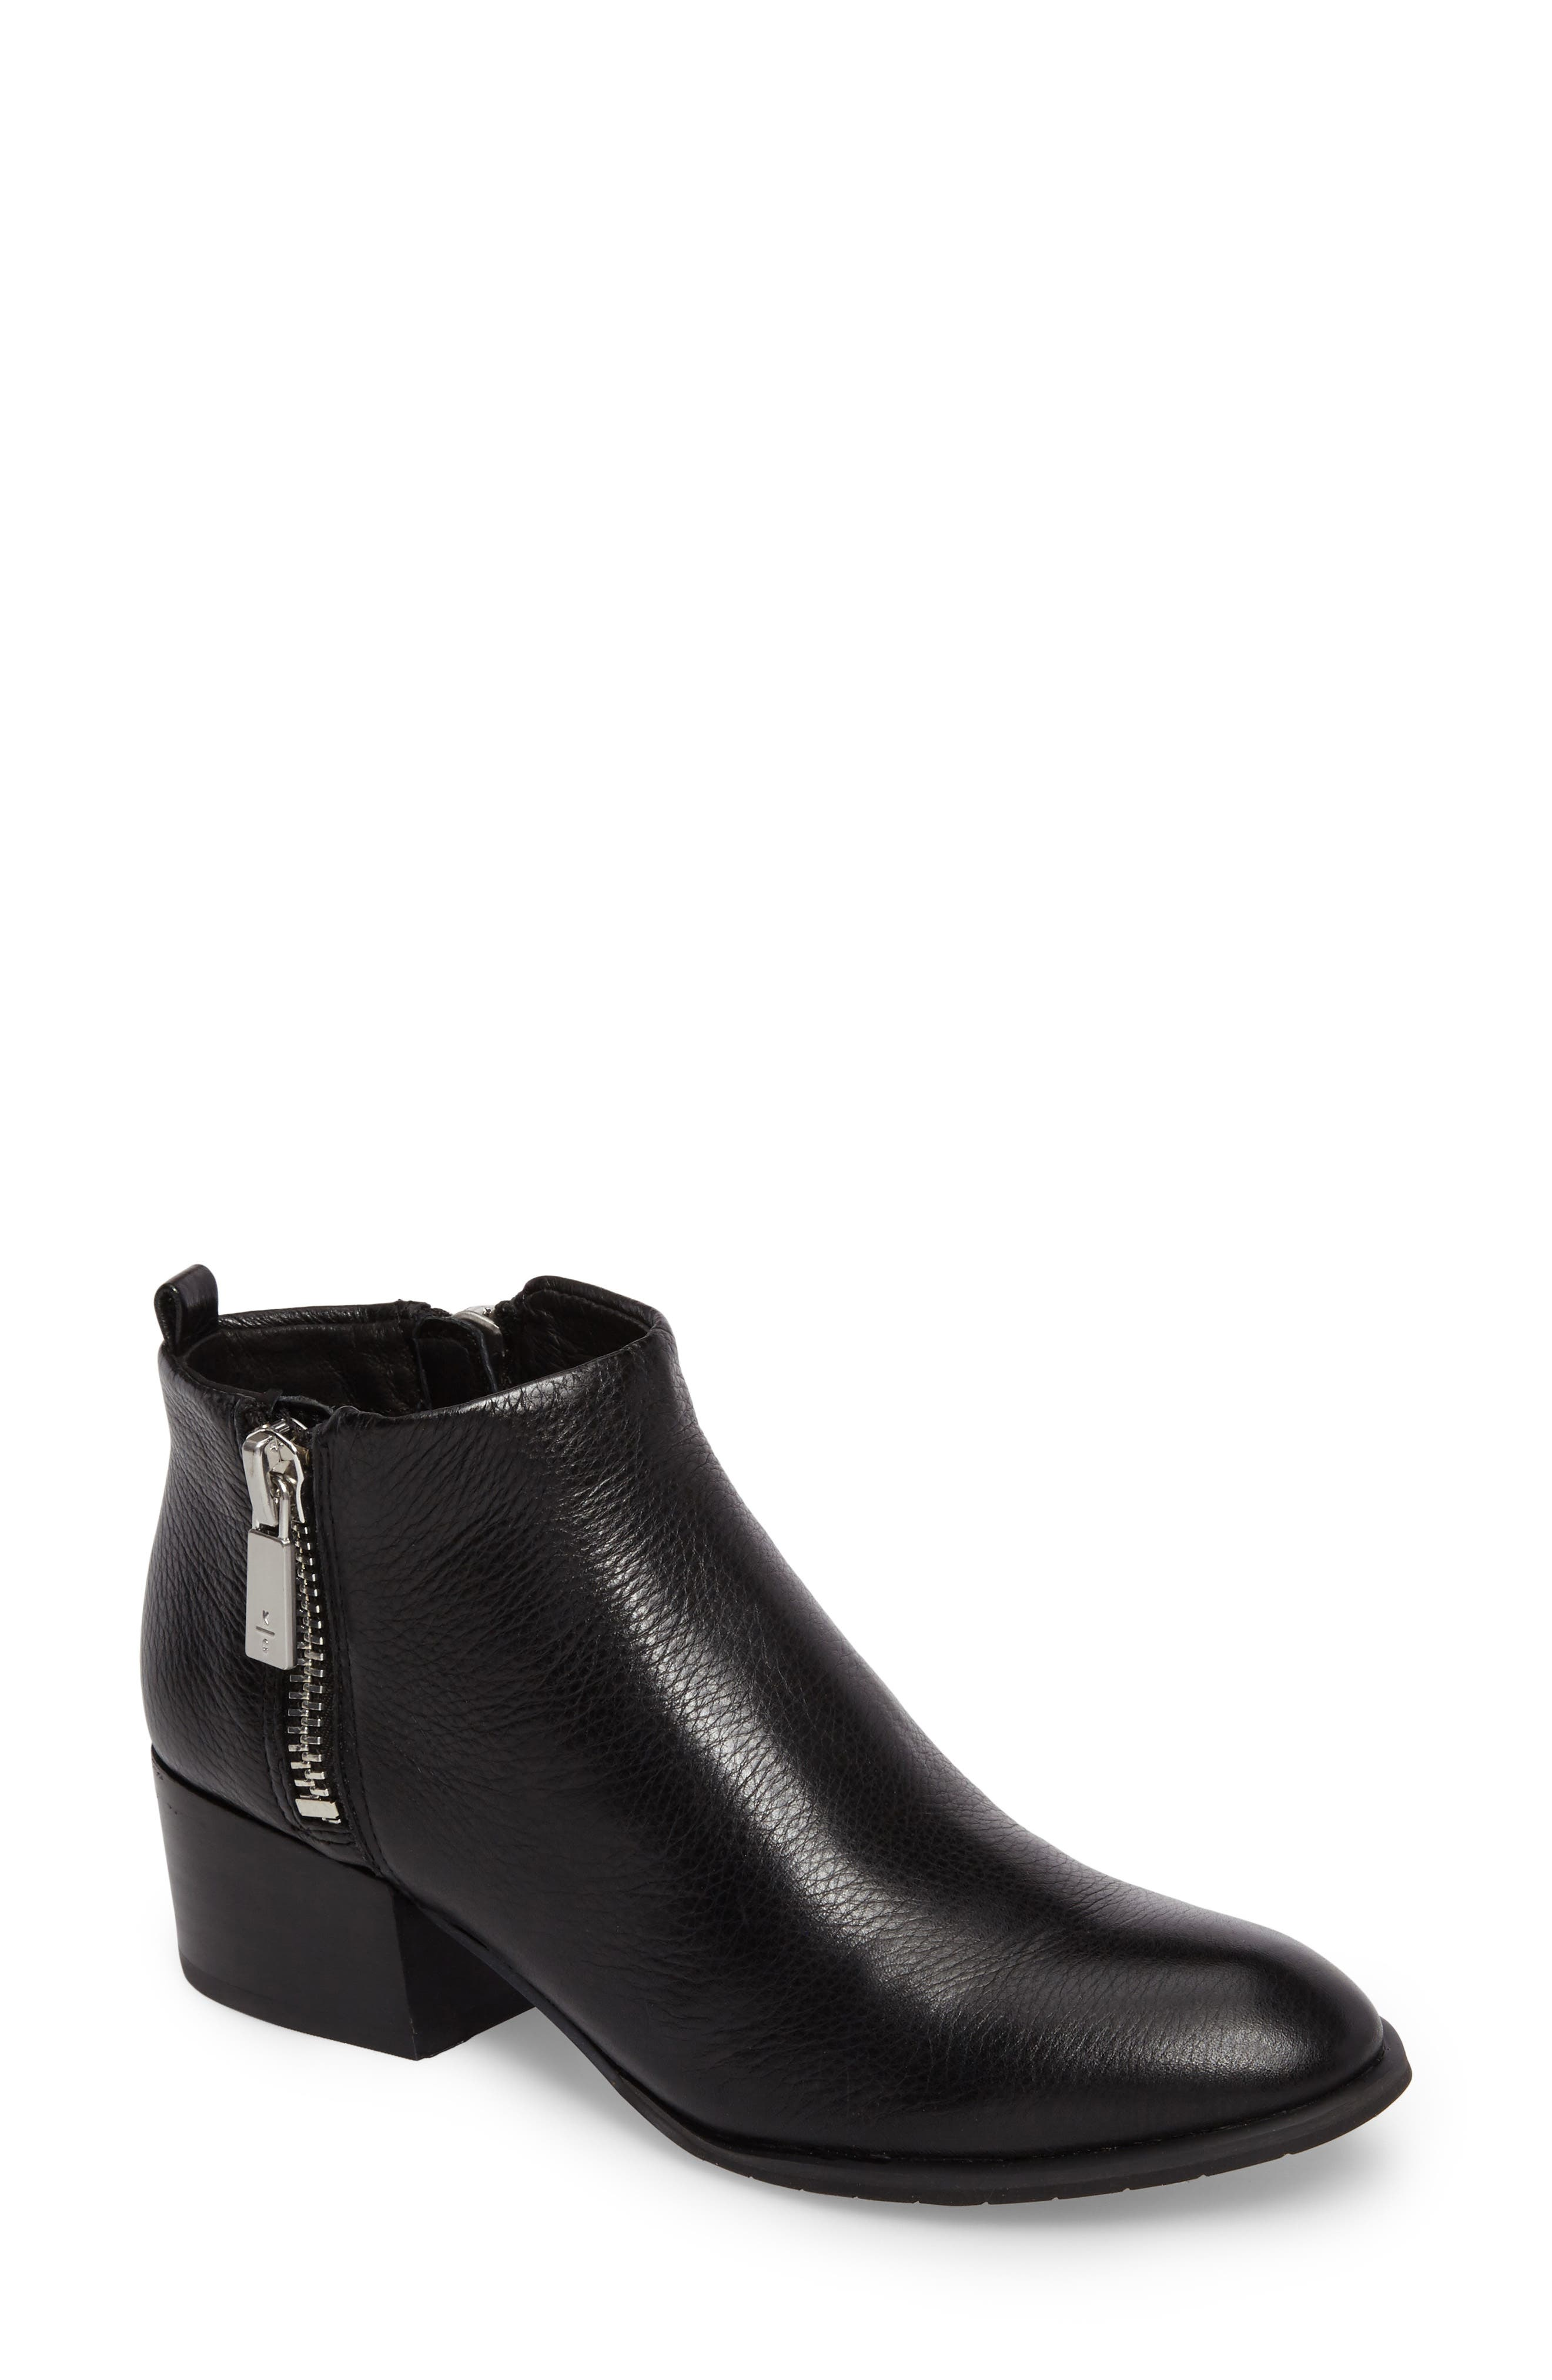 KENNETH COLE NEW YORK Addy Bootie, Main, color, 001